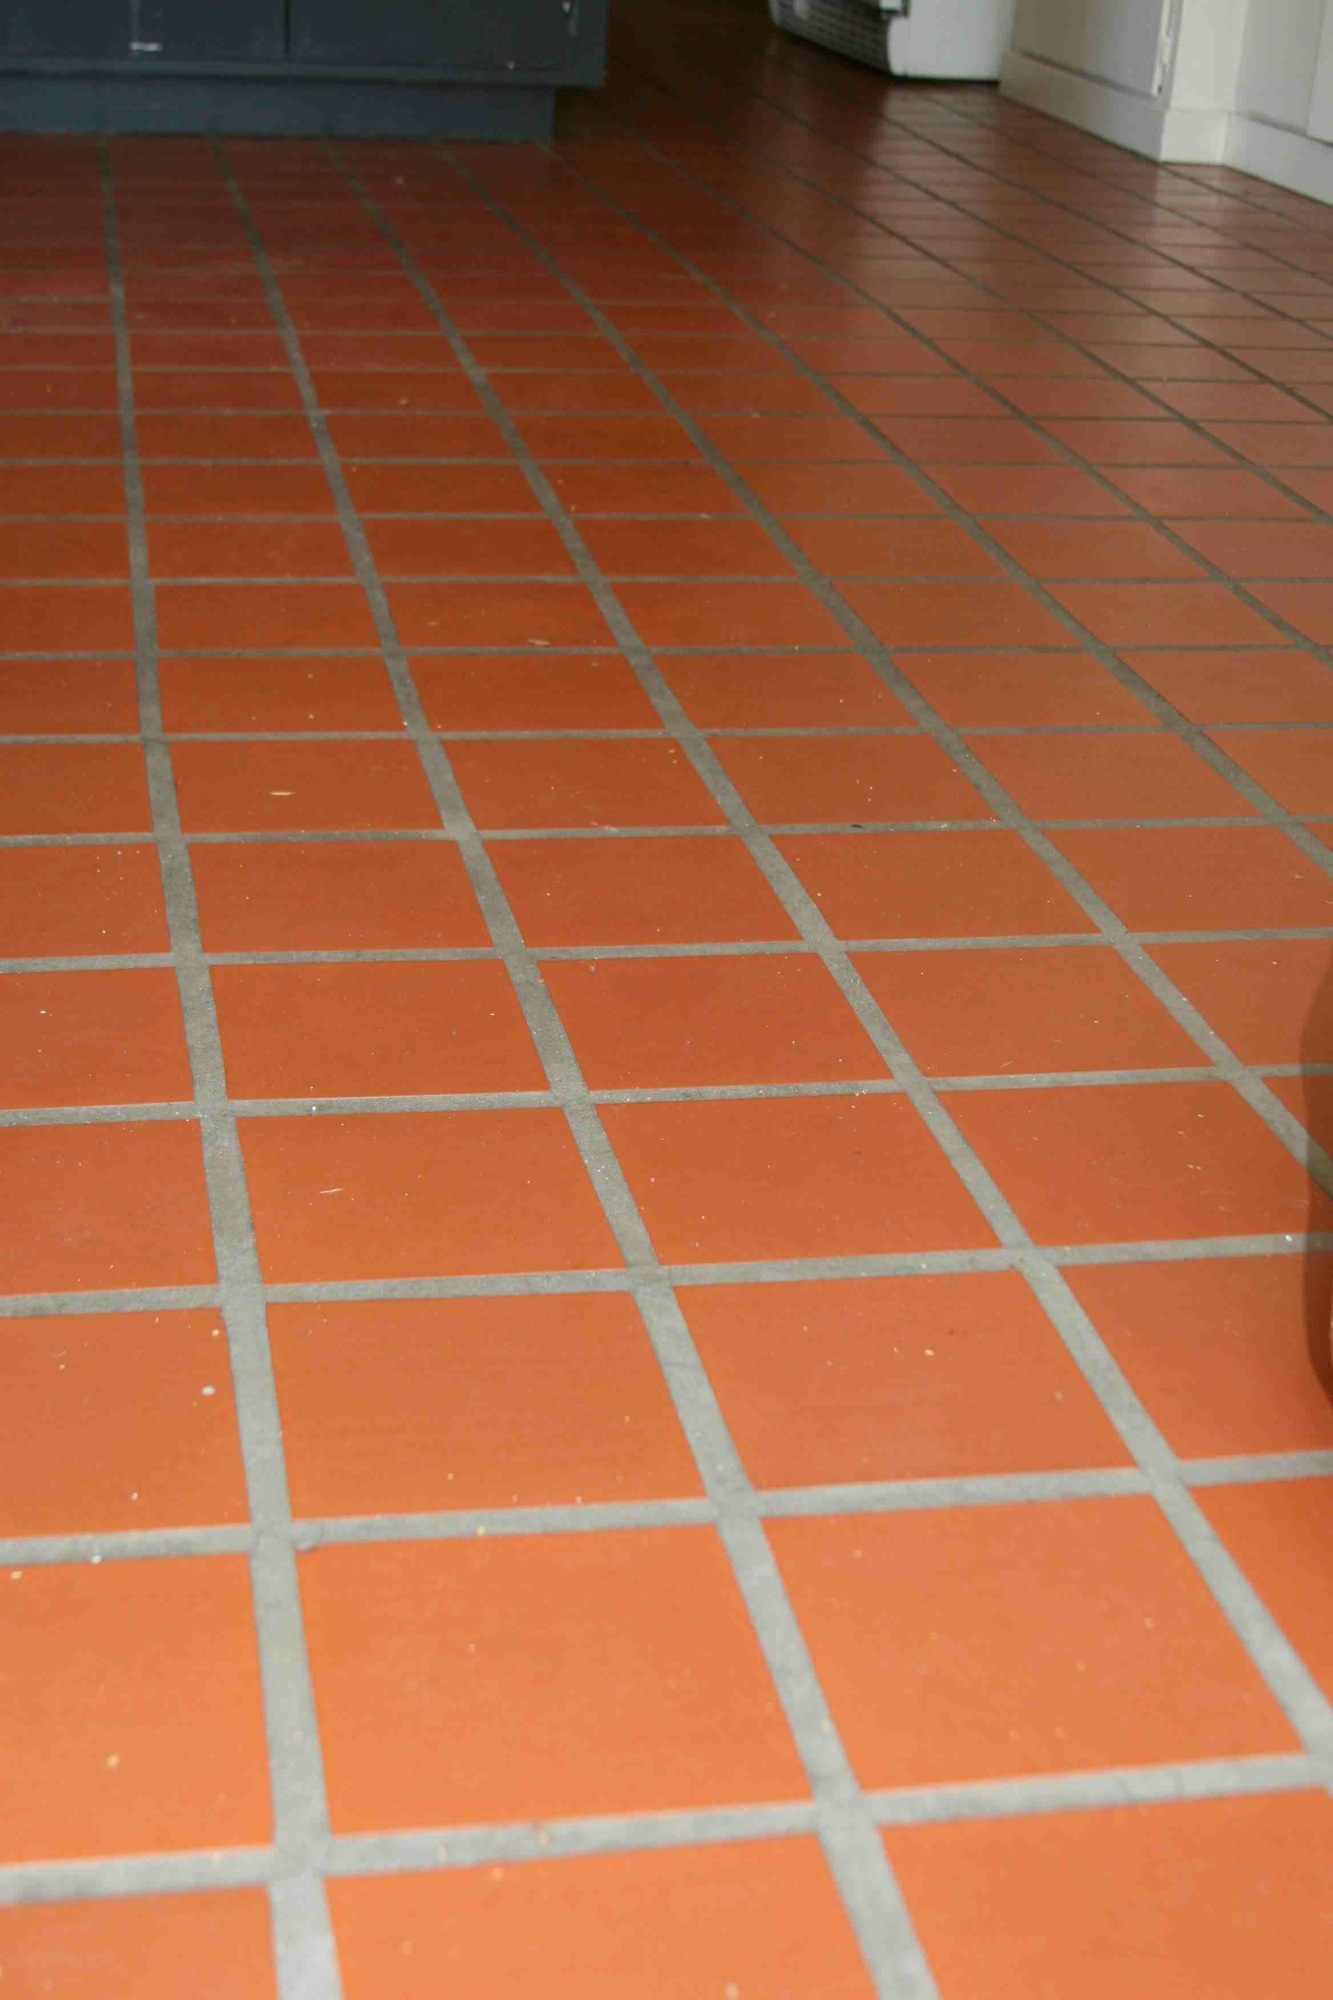 Yay cork flooring going over bad kitchen tile brand hang cork flooring going over bad kitchen tile dailygadgetfo Image collections